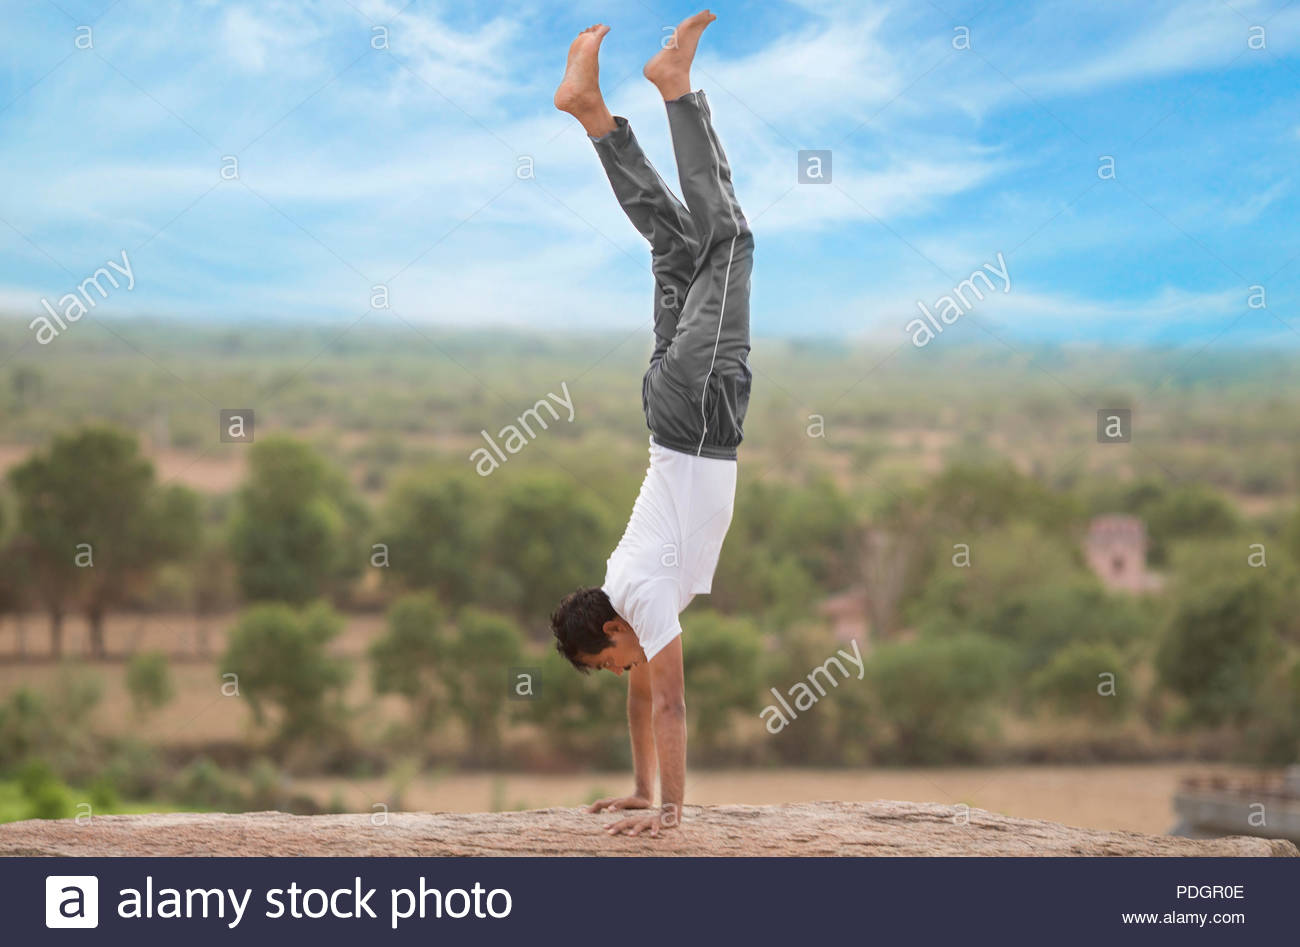 Young Indian man on top of mountain in adho mukha vrksasana  yoga pose. - Stock Image